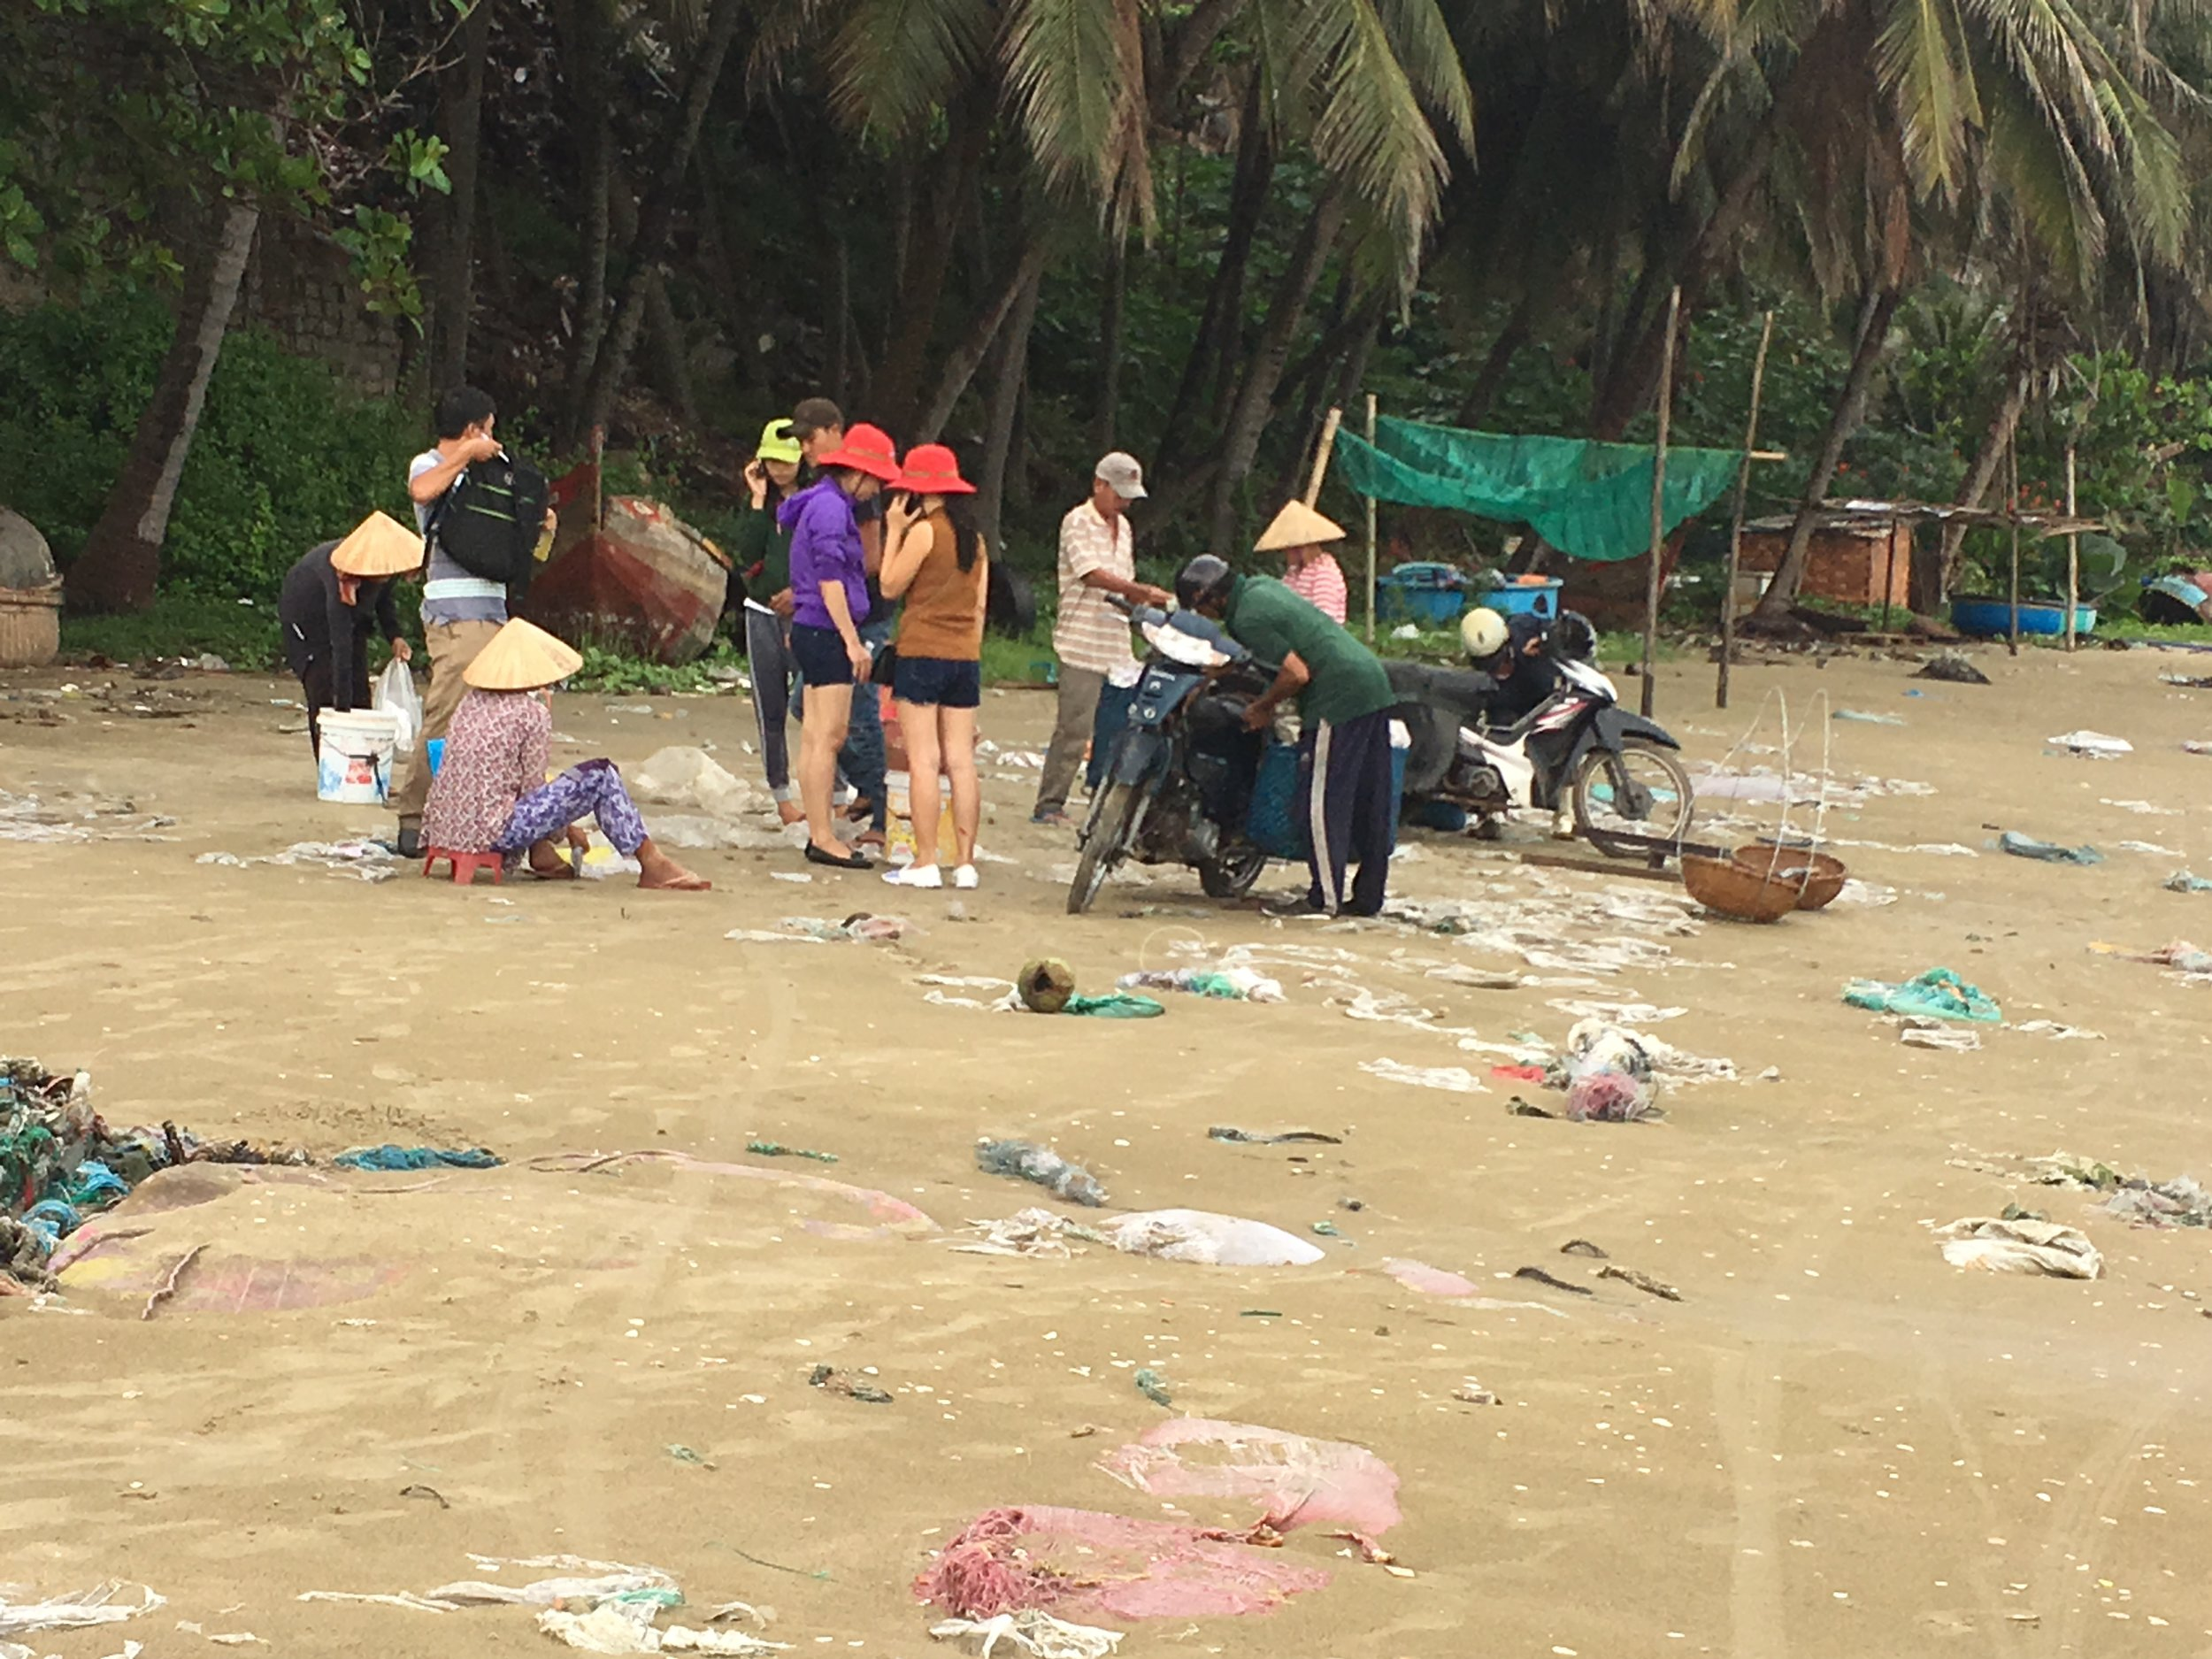 Fishers and buyers selling their daily catch on a beach, littered with plastic, in Mui Ne, Binh Thuan Province.A popular weekend getaway from Ho Chi Minh City, local and foreign tourists visit the beaches to buy seahorses and other seafood.